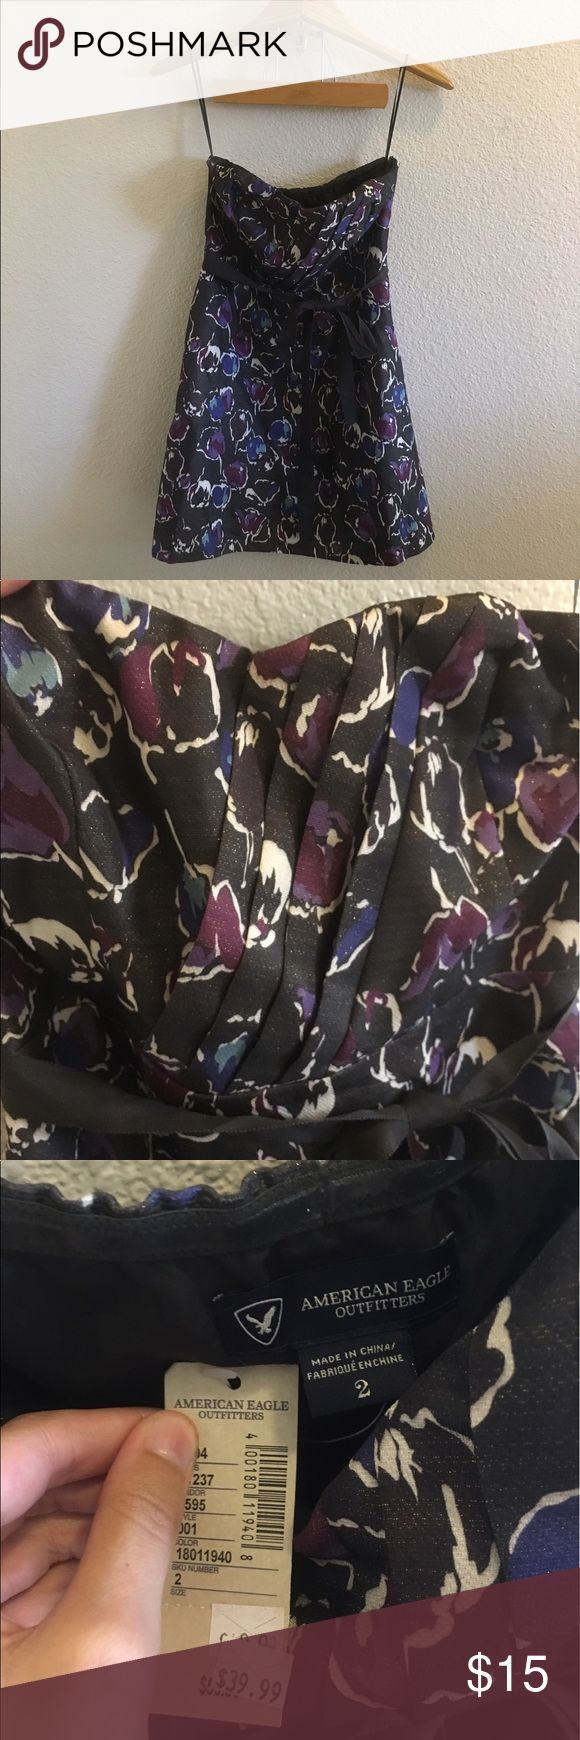 NWT Strapless Floral Dress Size 2 floral dress by American Eagle Outfitters. Dash around the waist, zips up the side. Brand new with tags. Strapless, cocktail style. I ship daily - excluding Sundays and holidays - and I store items in a smoke free, pet free environment. Open to offers; bundles discounted! American Eagle Outfitters Dresses Strapless